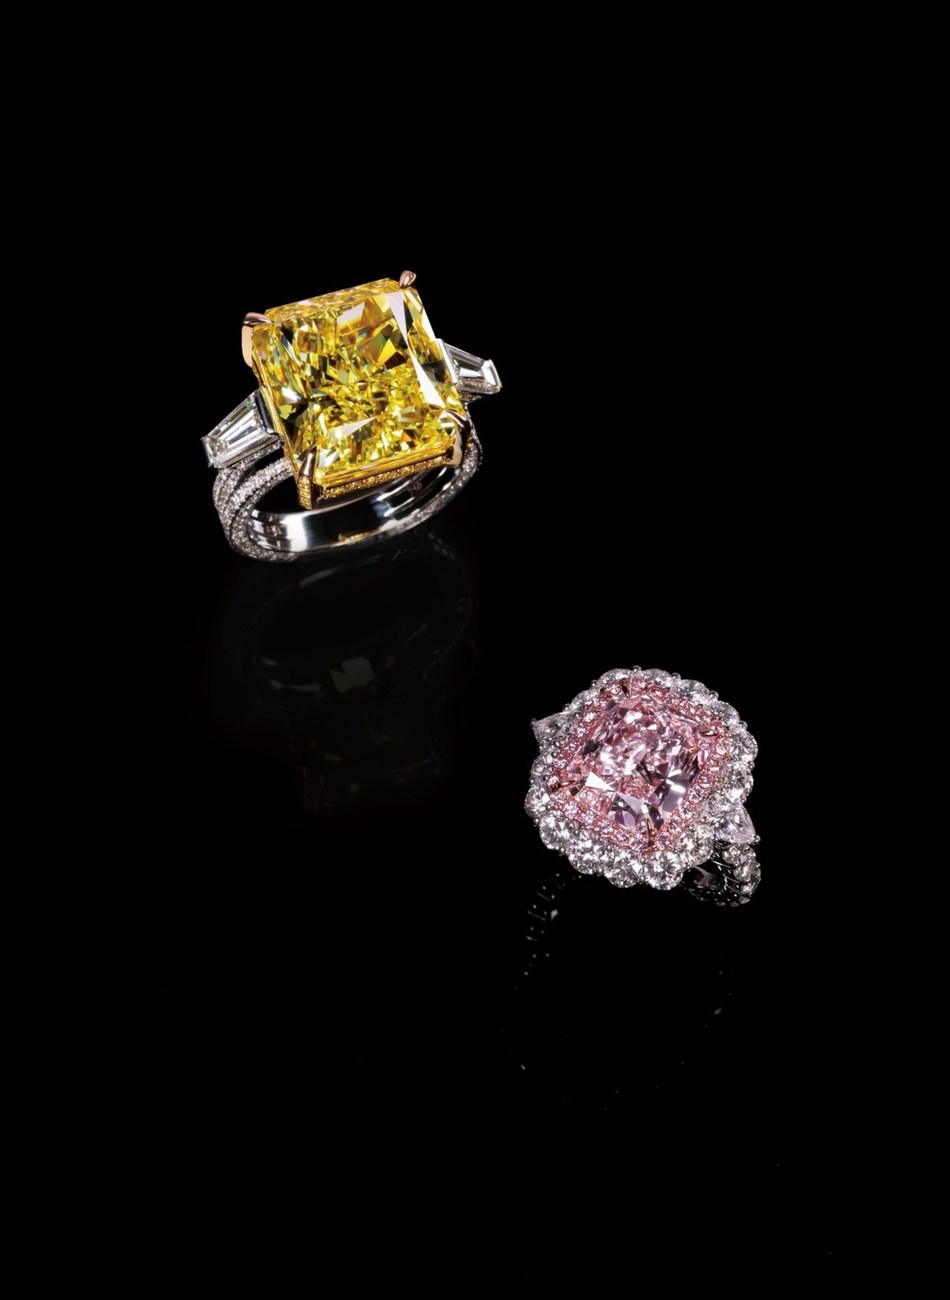 Glamour Fine Jewelry will showcase a 6.00-carat fancy light pink diamond ring and a 15.00-carat fancy vivid yellow diamond ring.